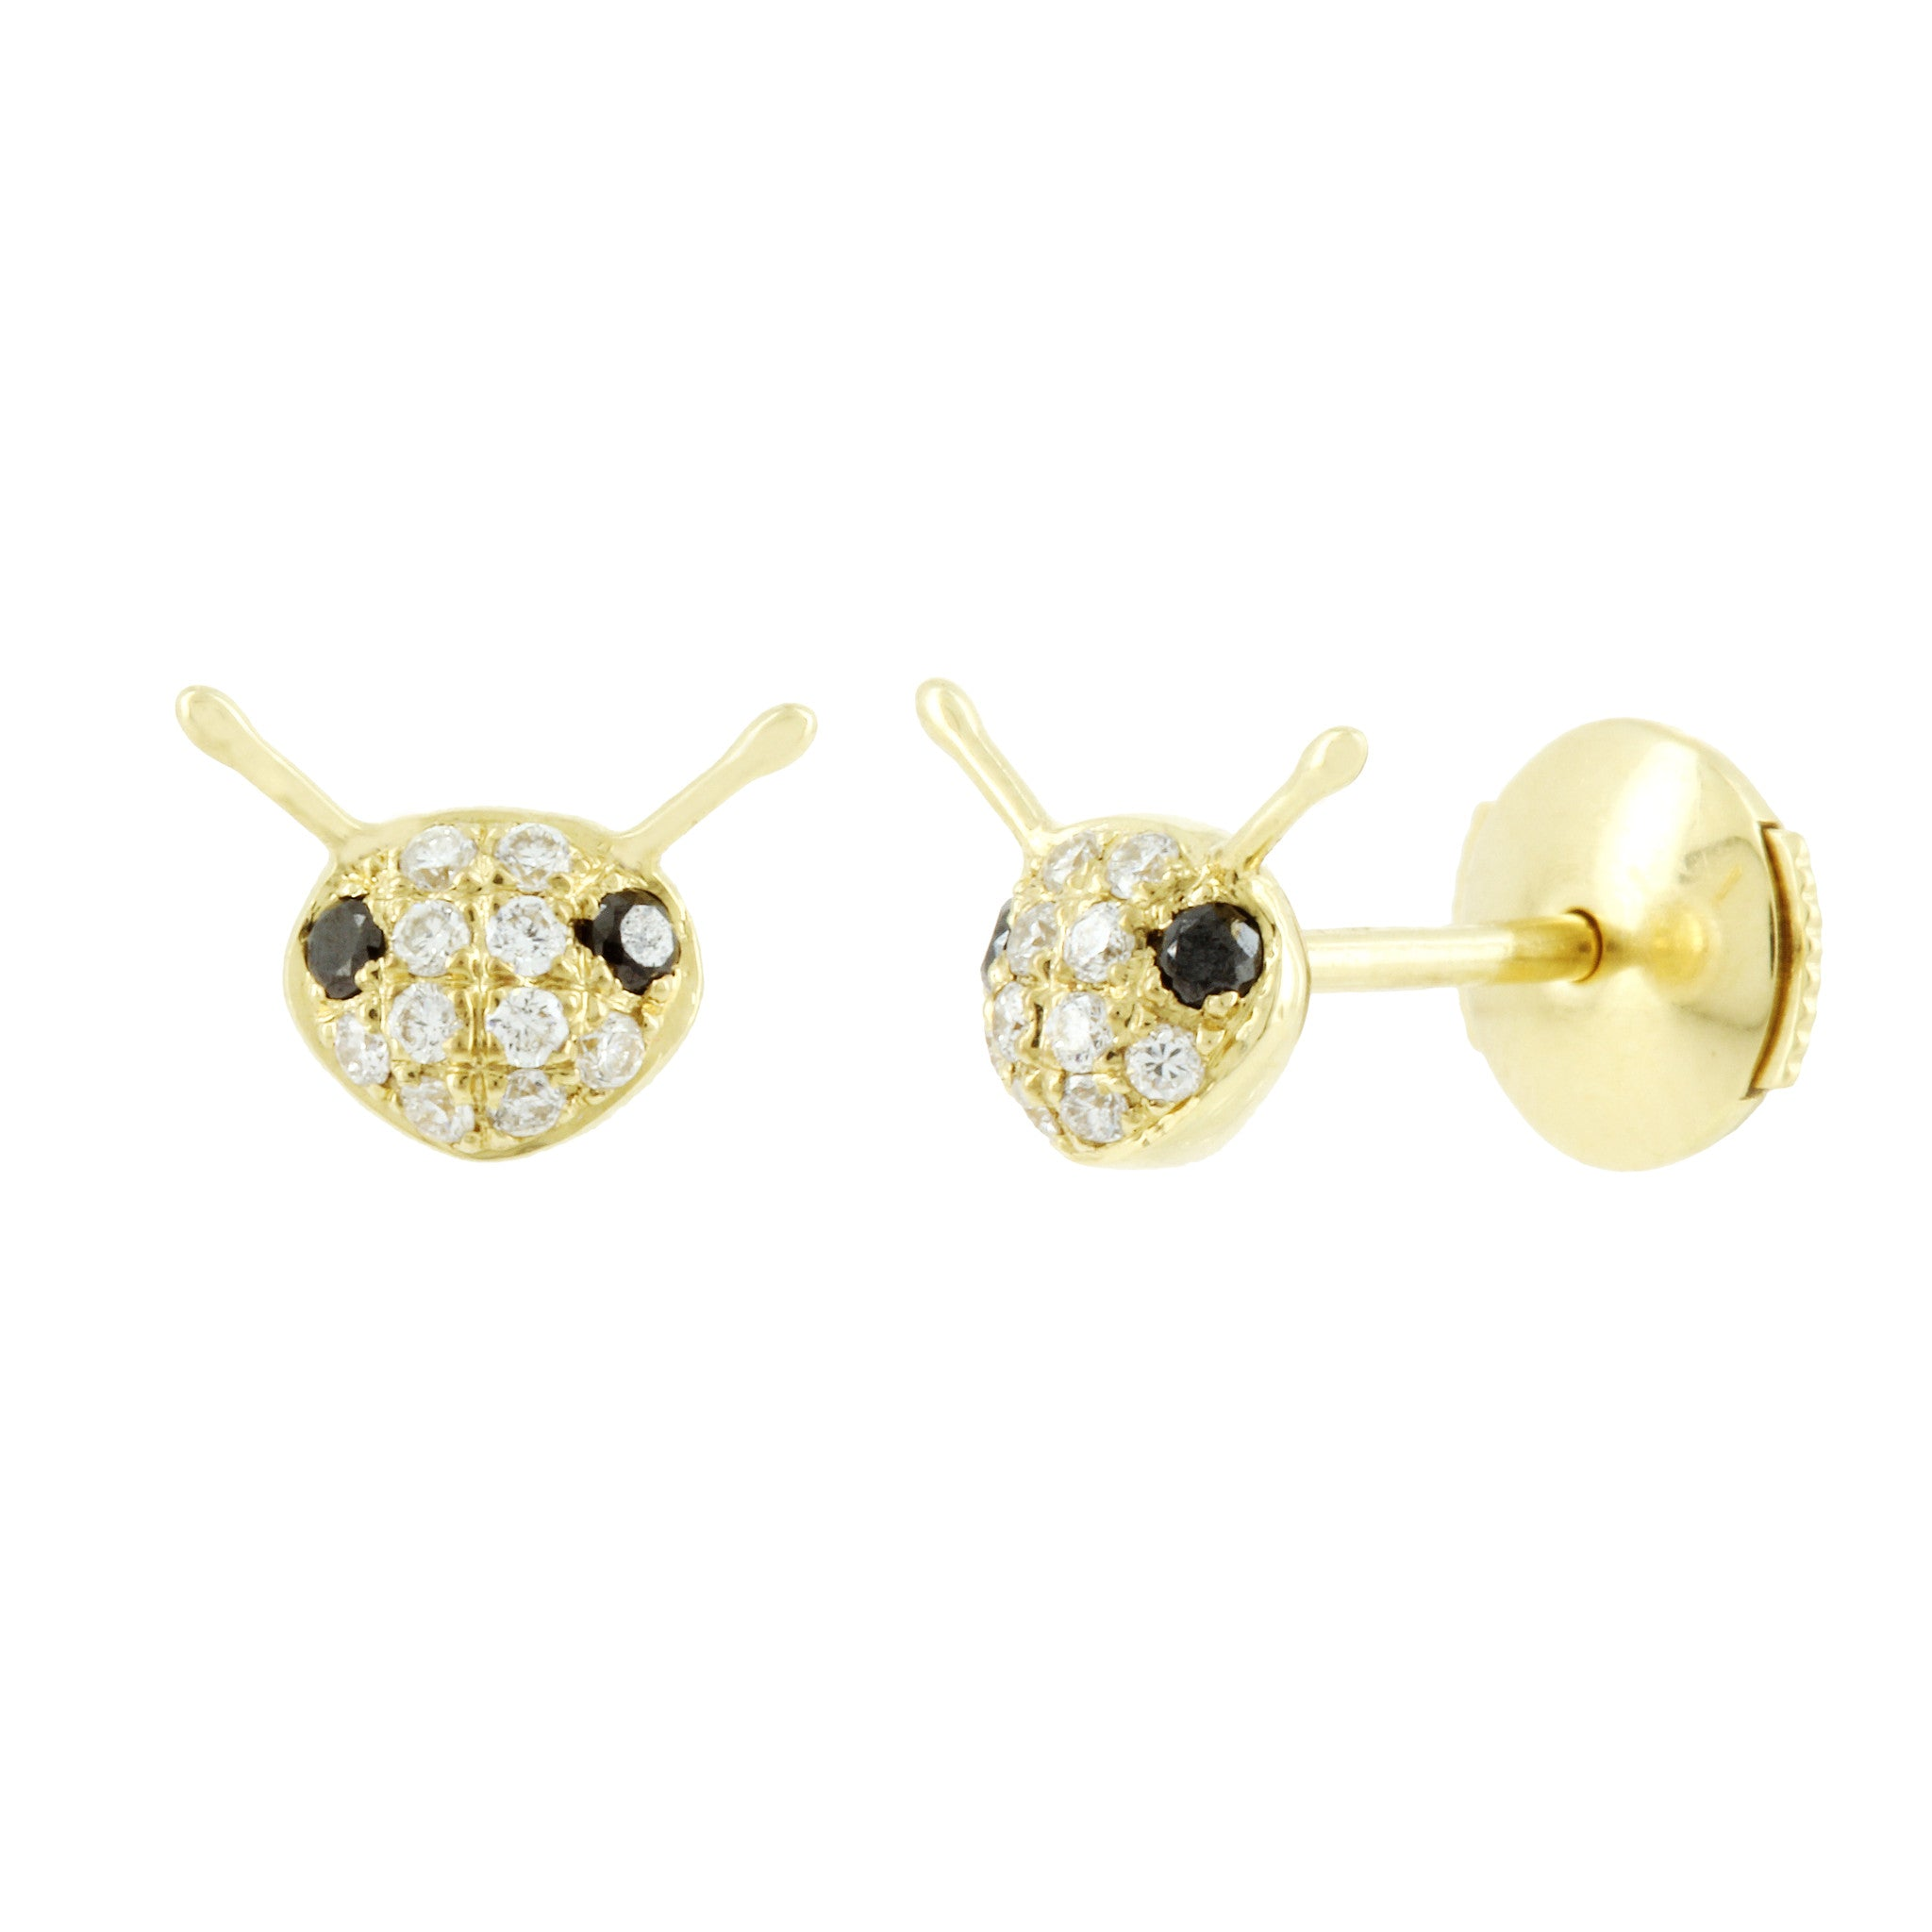 jewelry lyst bee normal stud product metallic in gallery gold bumble taylor ann earrings